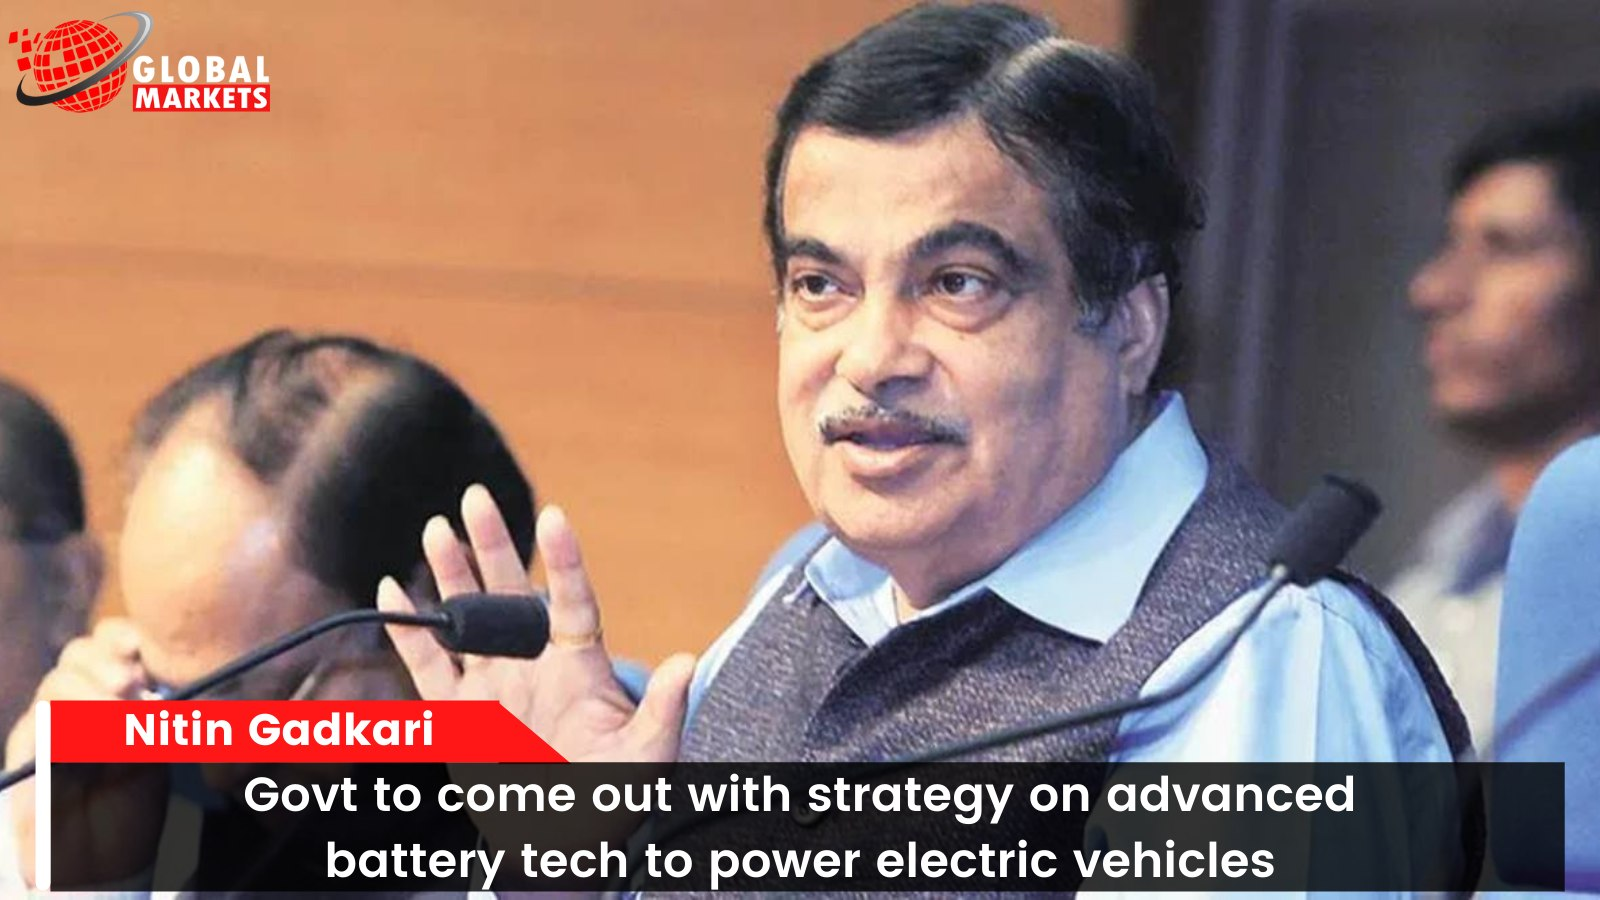 Govt to come out with strategy on advanced battery tech to power electric vehicles